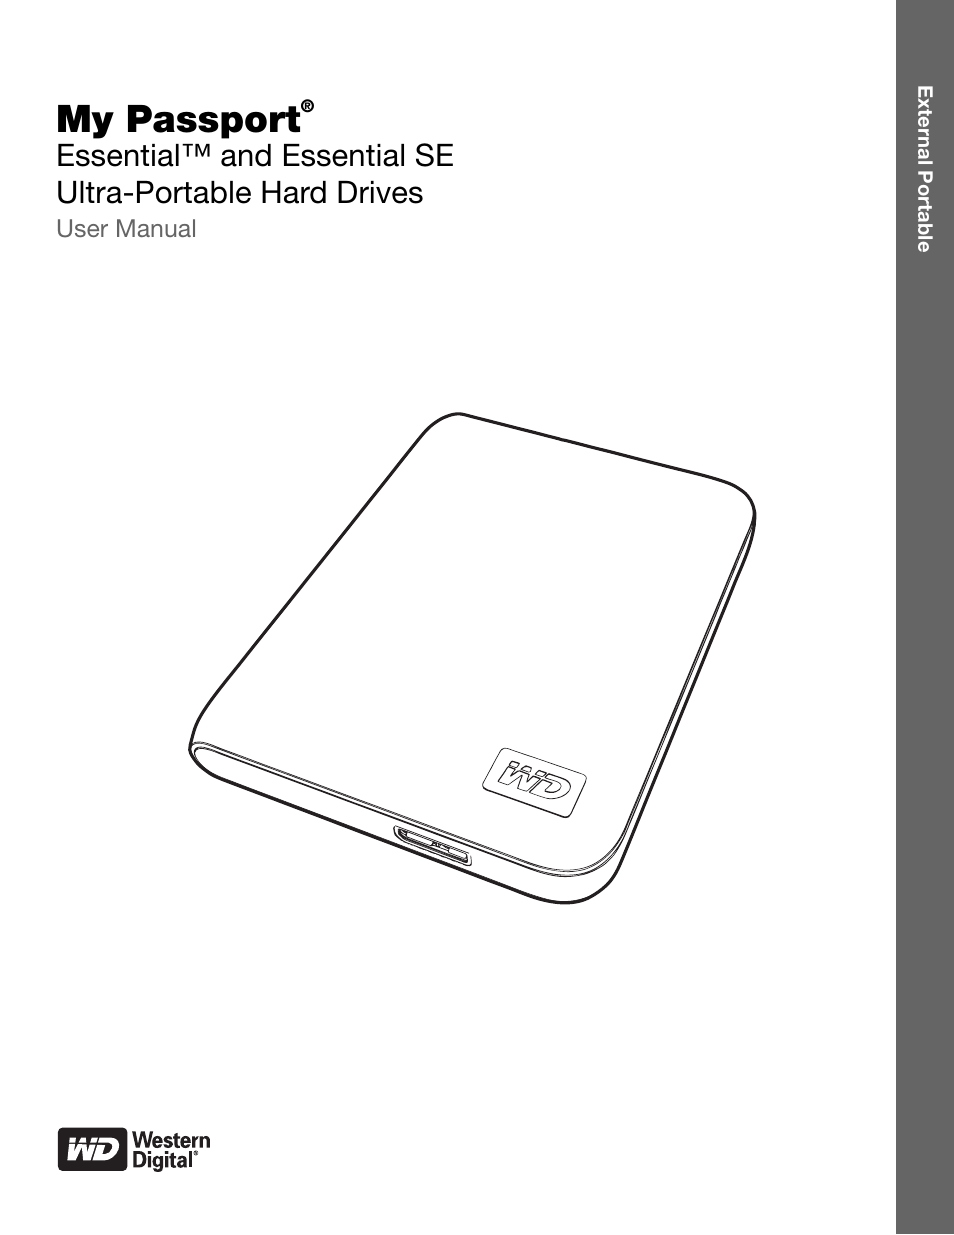 western digital my passport essential se user manual user manual rh manualsdir com Western Digital My Passport Dimensions western digital my passport ultra user manual